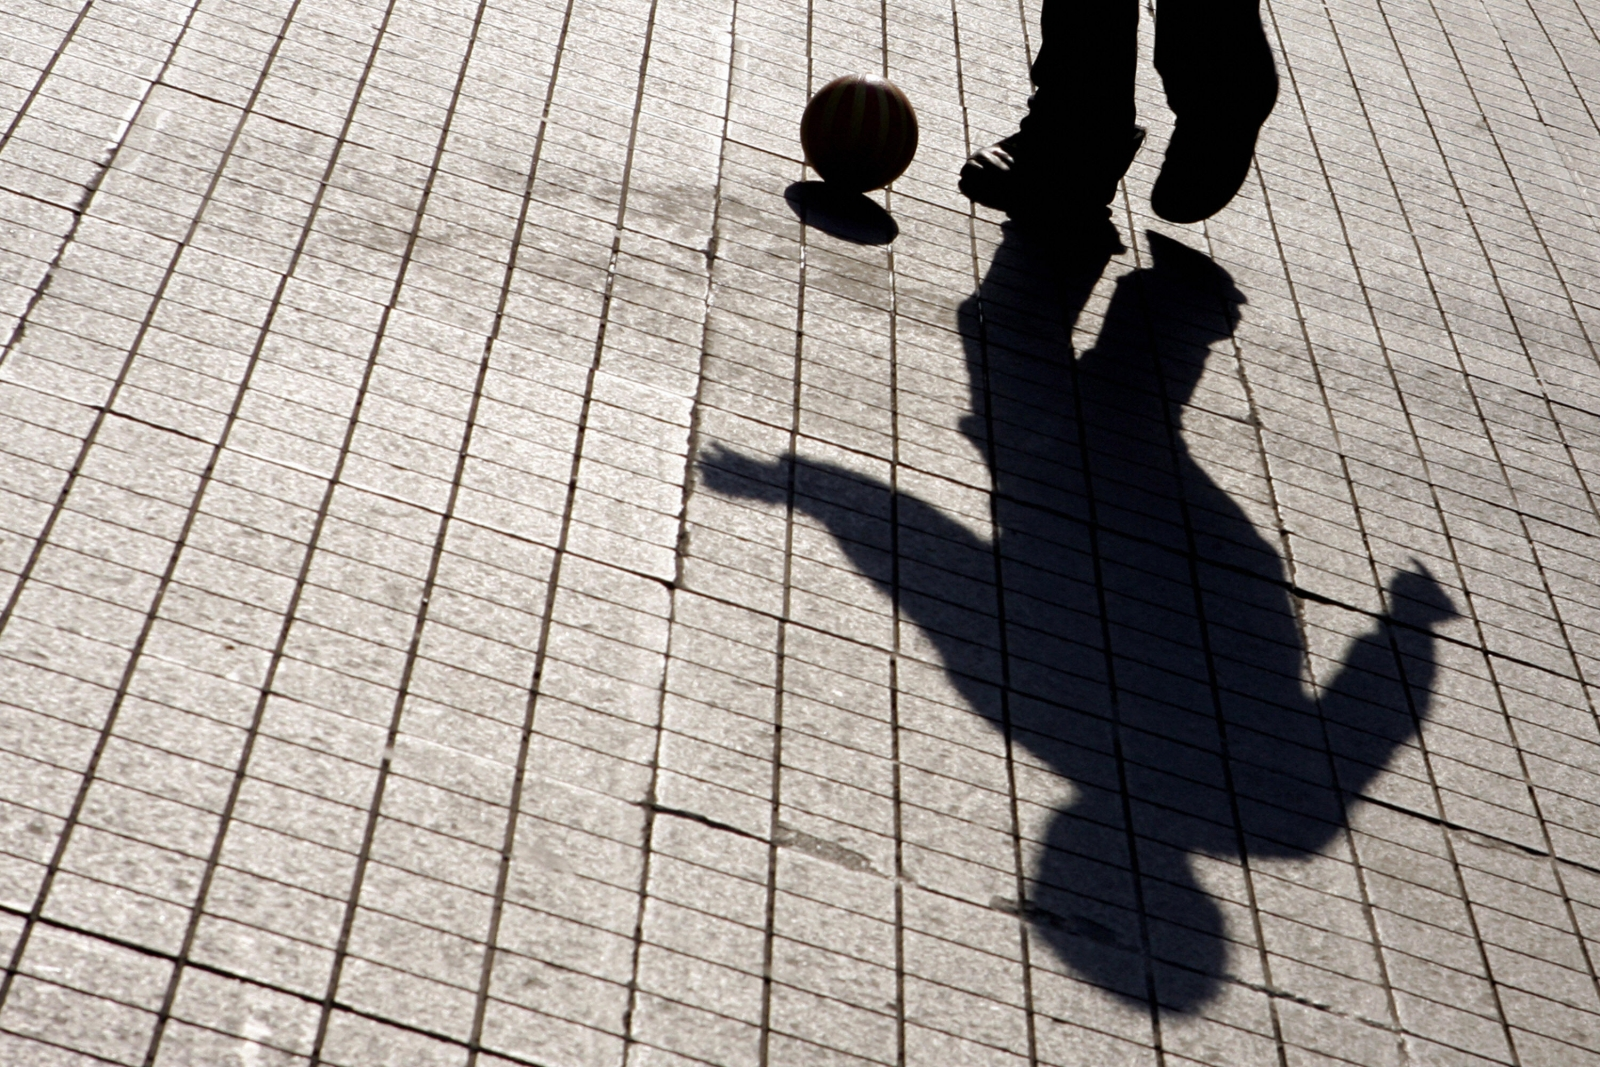 boy playing with ball in shadow